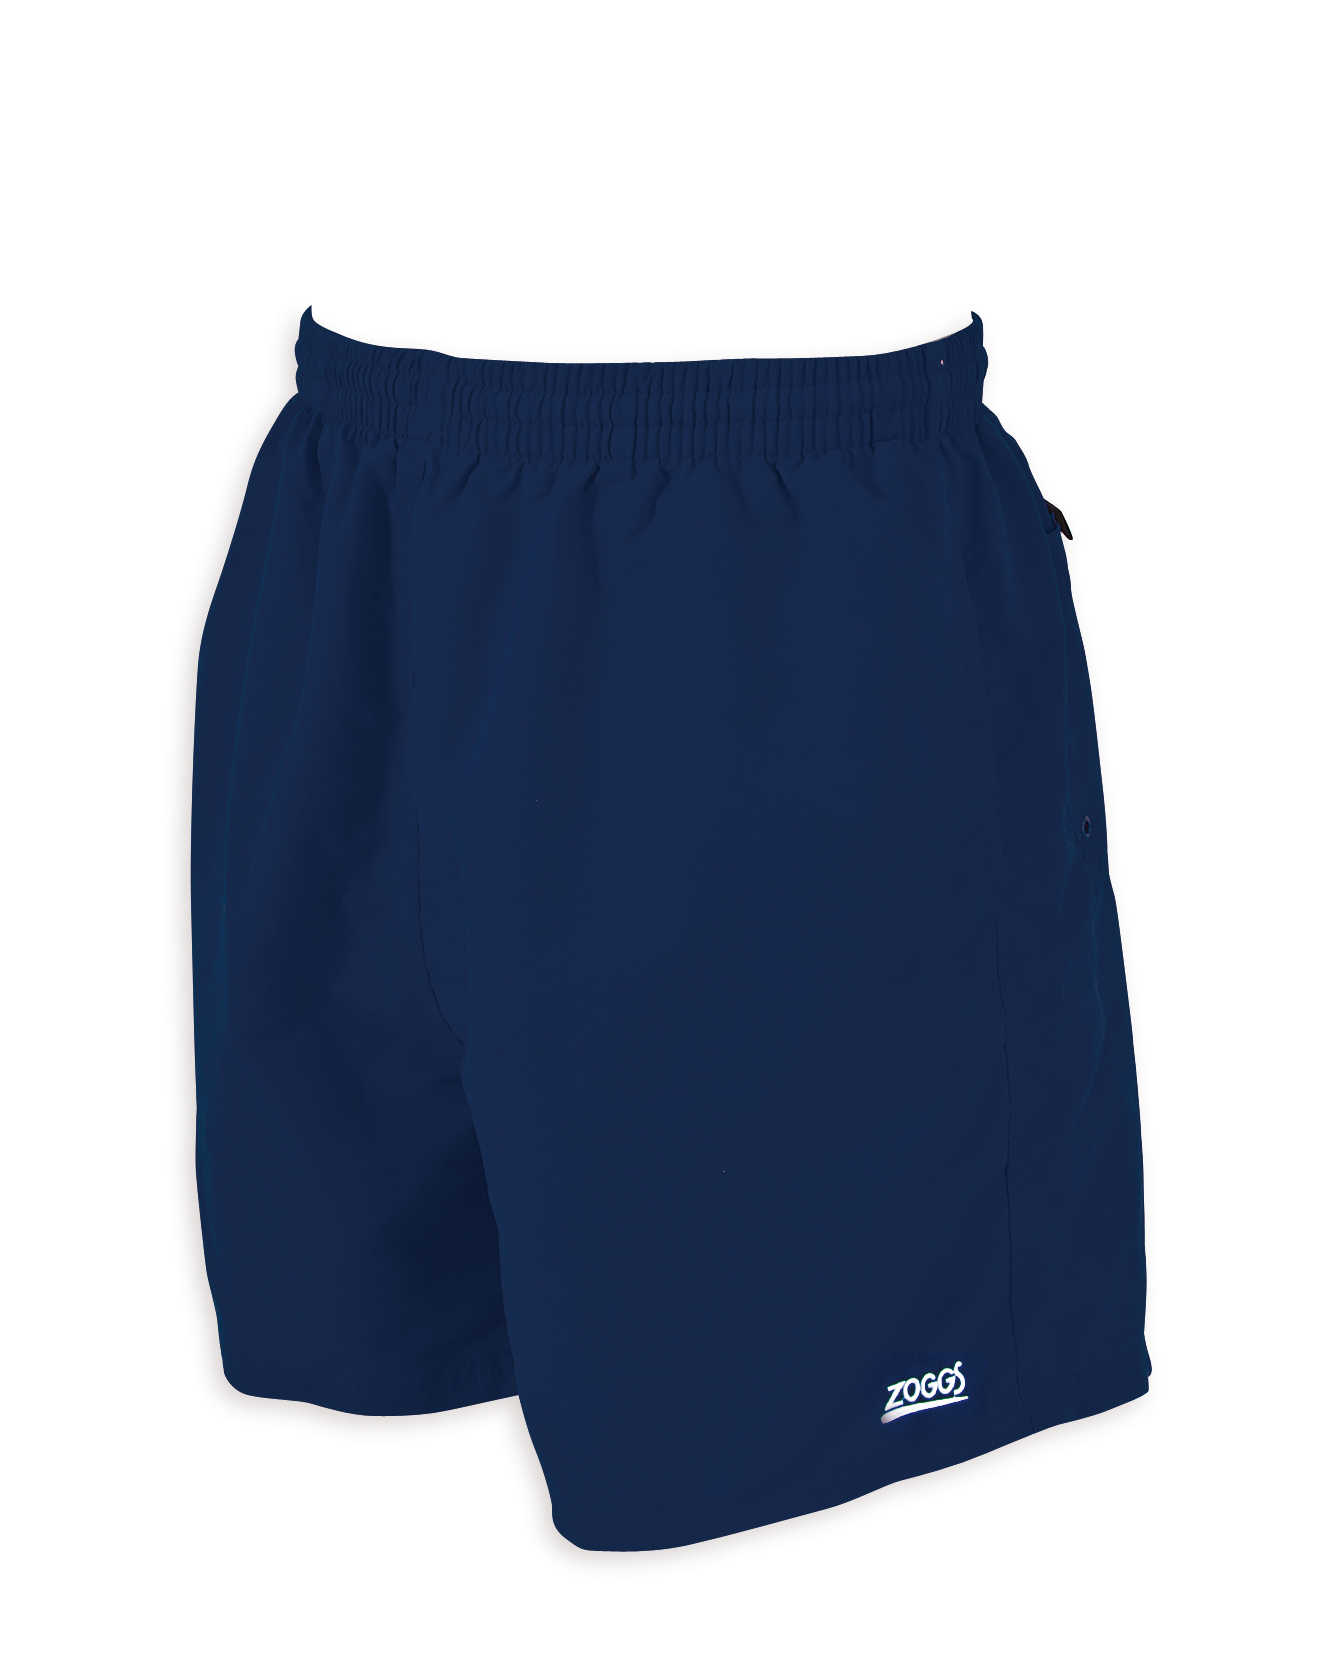 Zoggs Boys Penrith 15 Watershorts  - Navy